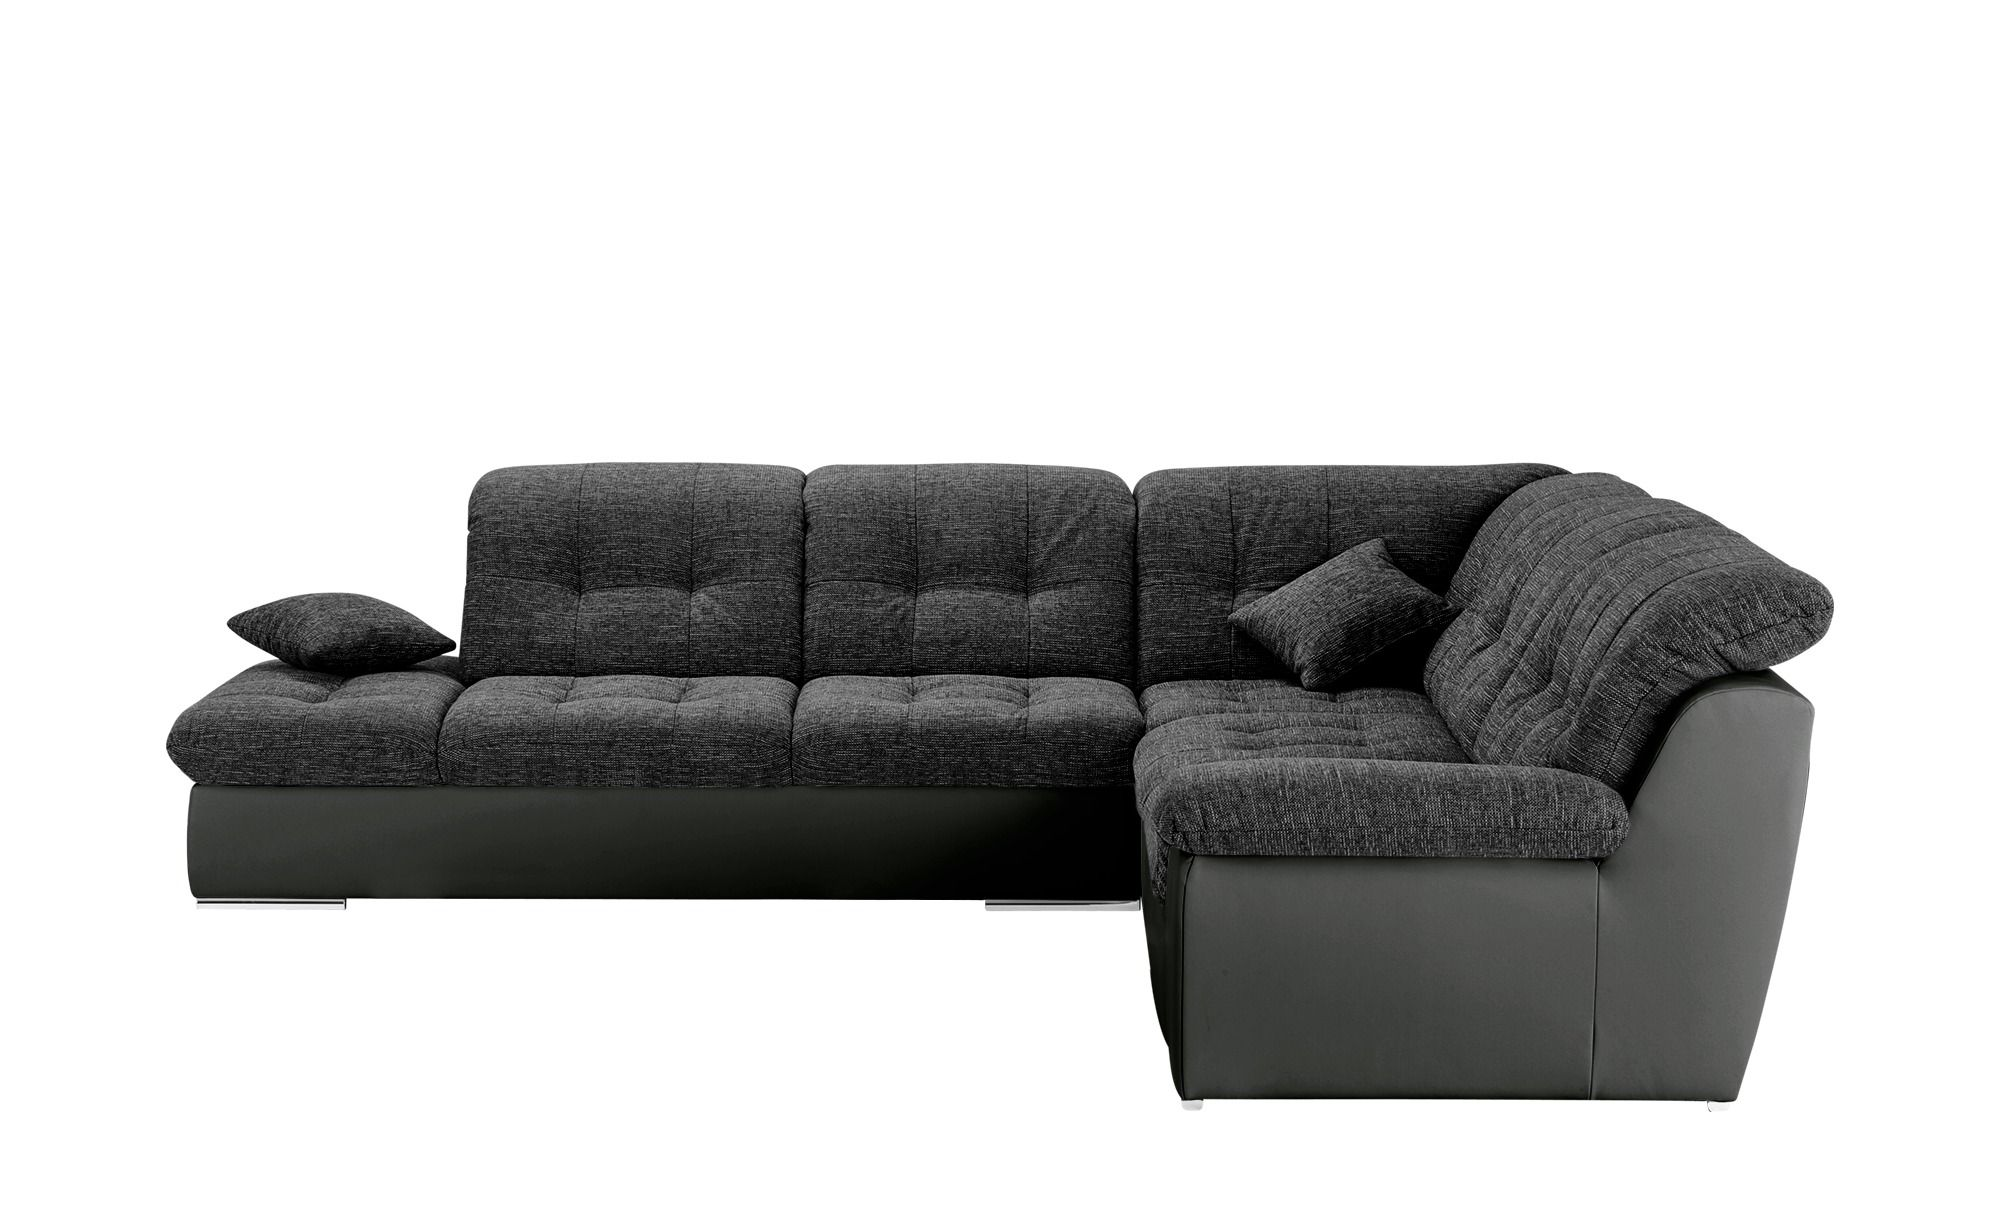 Sofa Mit Ottomane Und Bettfunktion Pin By Ladendirekt On Sofas Couches Sofa Sofa Design Couch